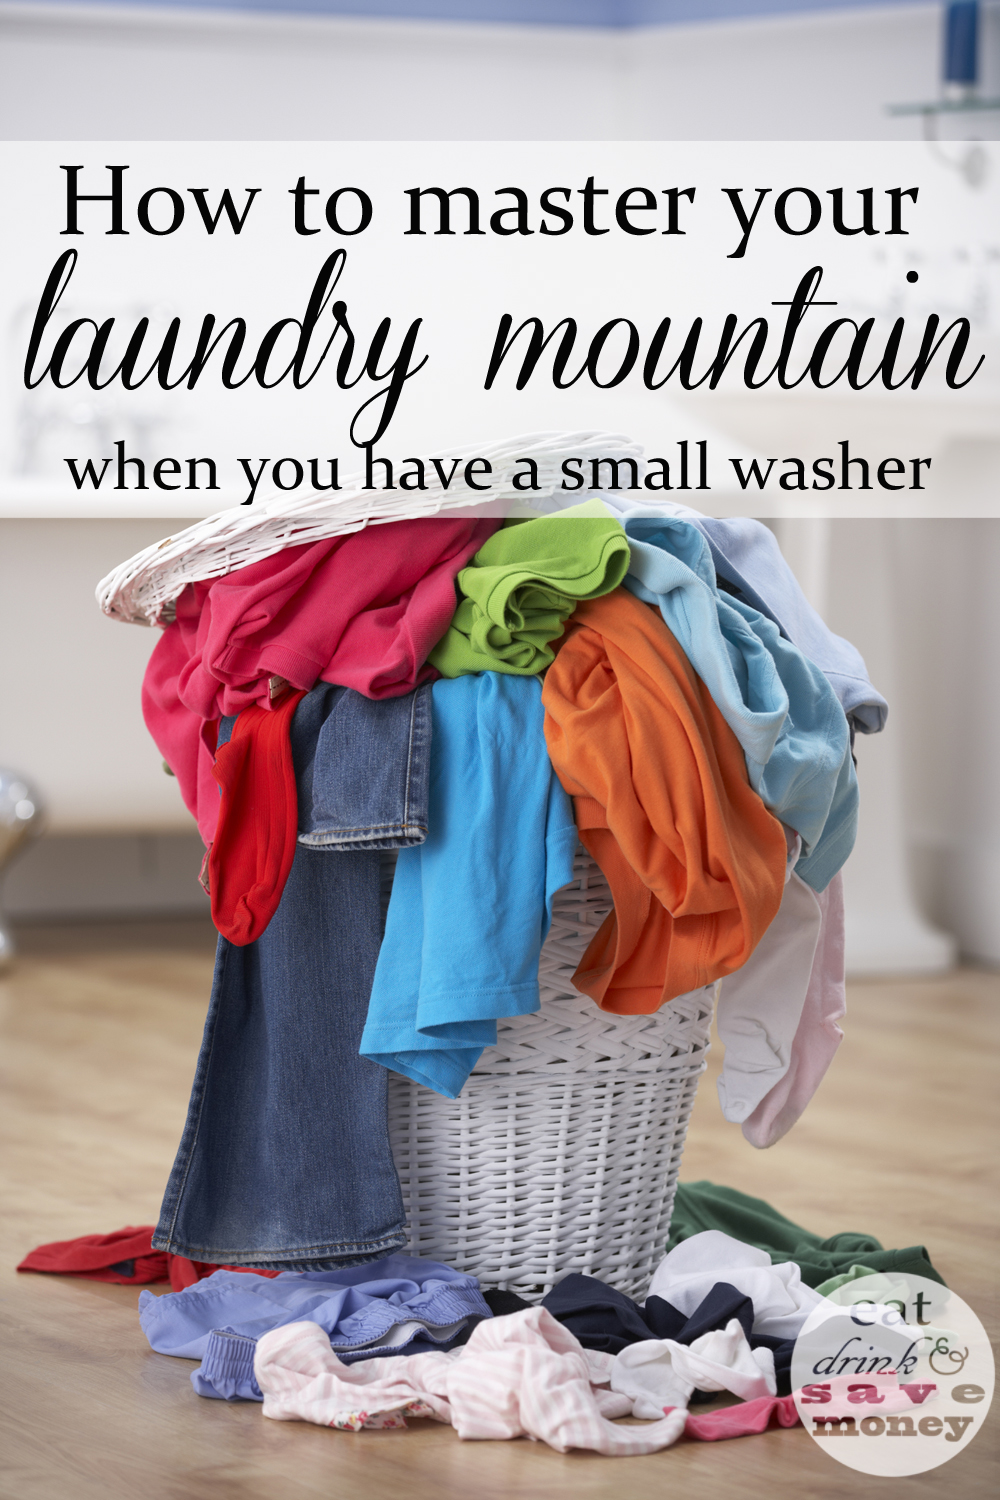 How to master your laundry mountain when you have a small washer